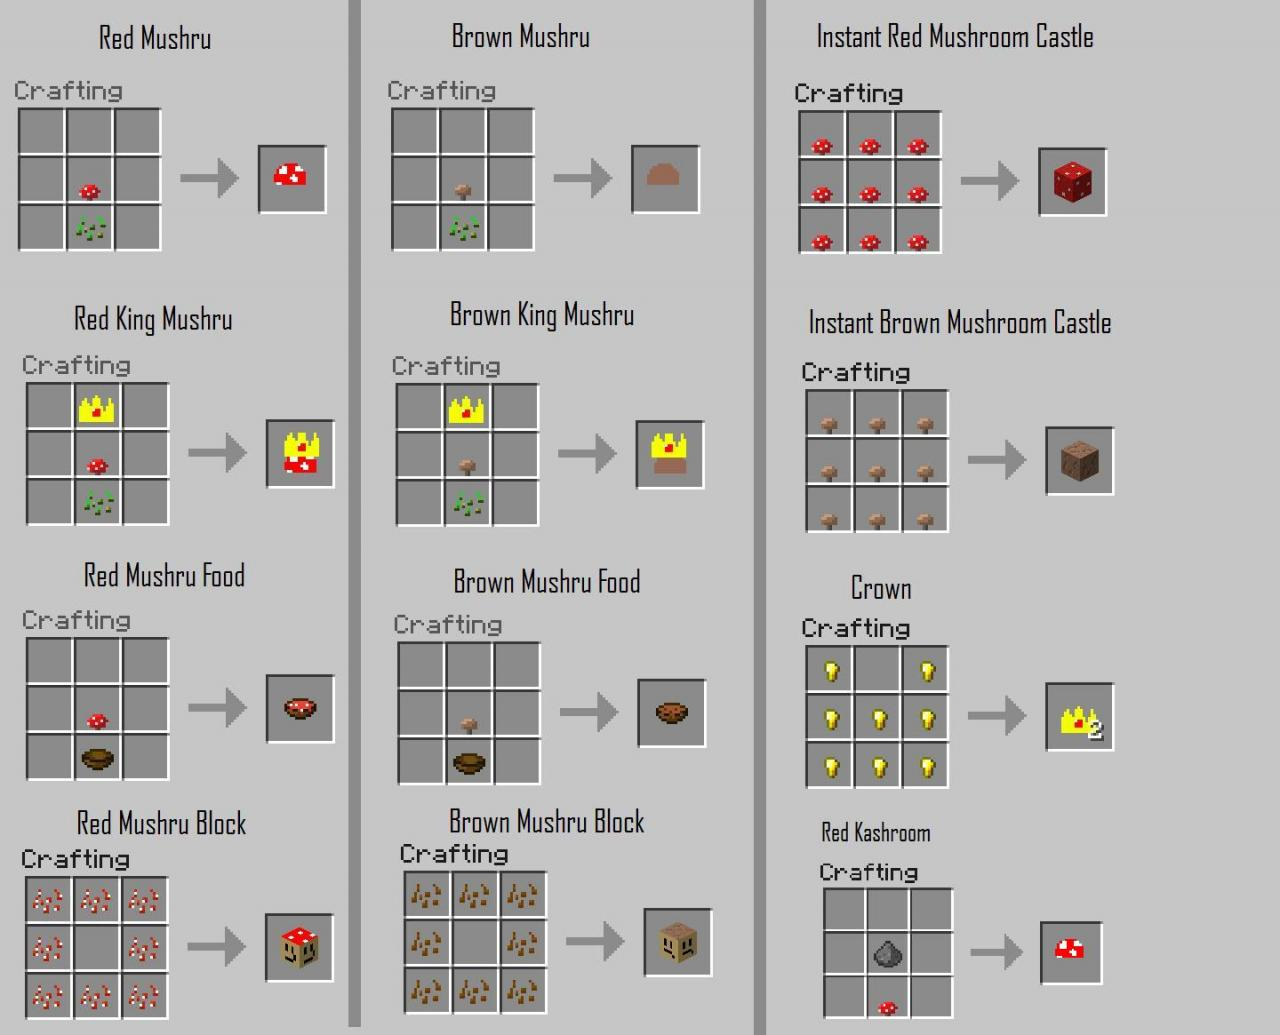 Pokemon crafting recipes images pokemon images - Minecraft crafting table recipes list ...